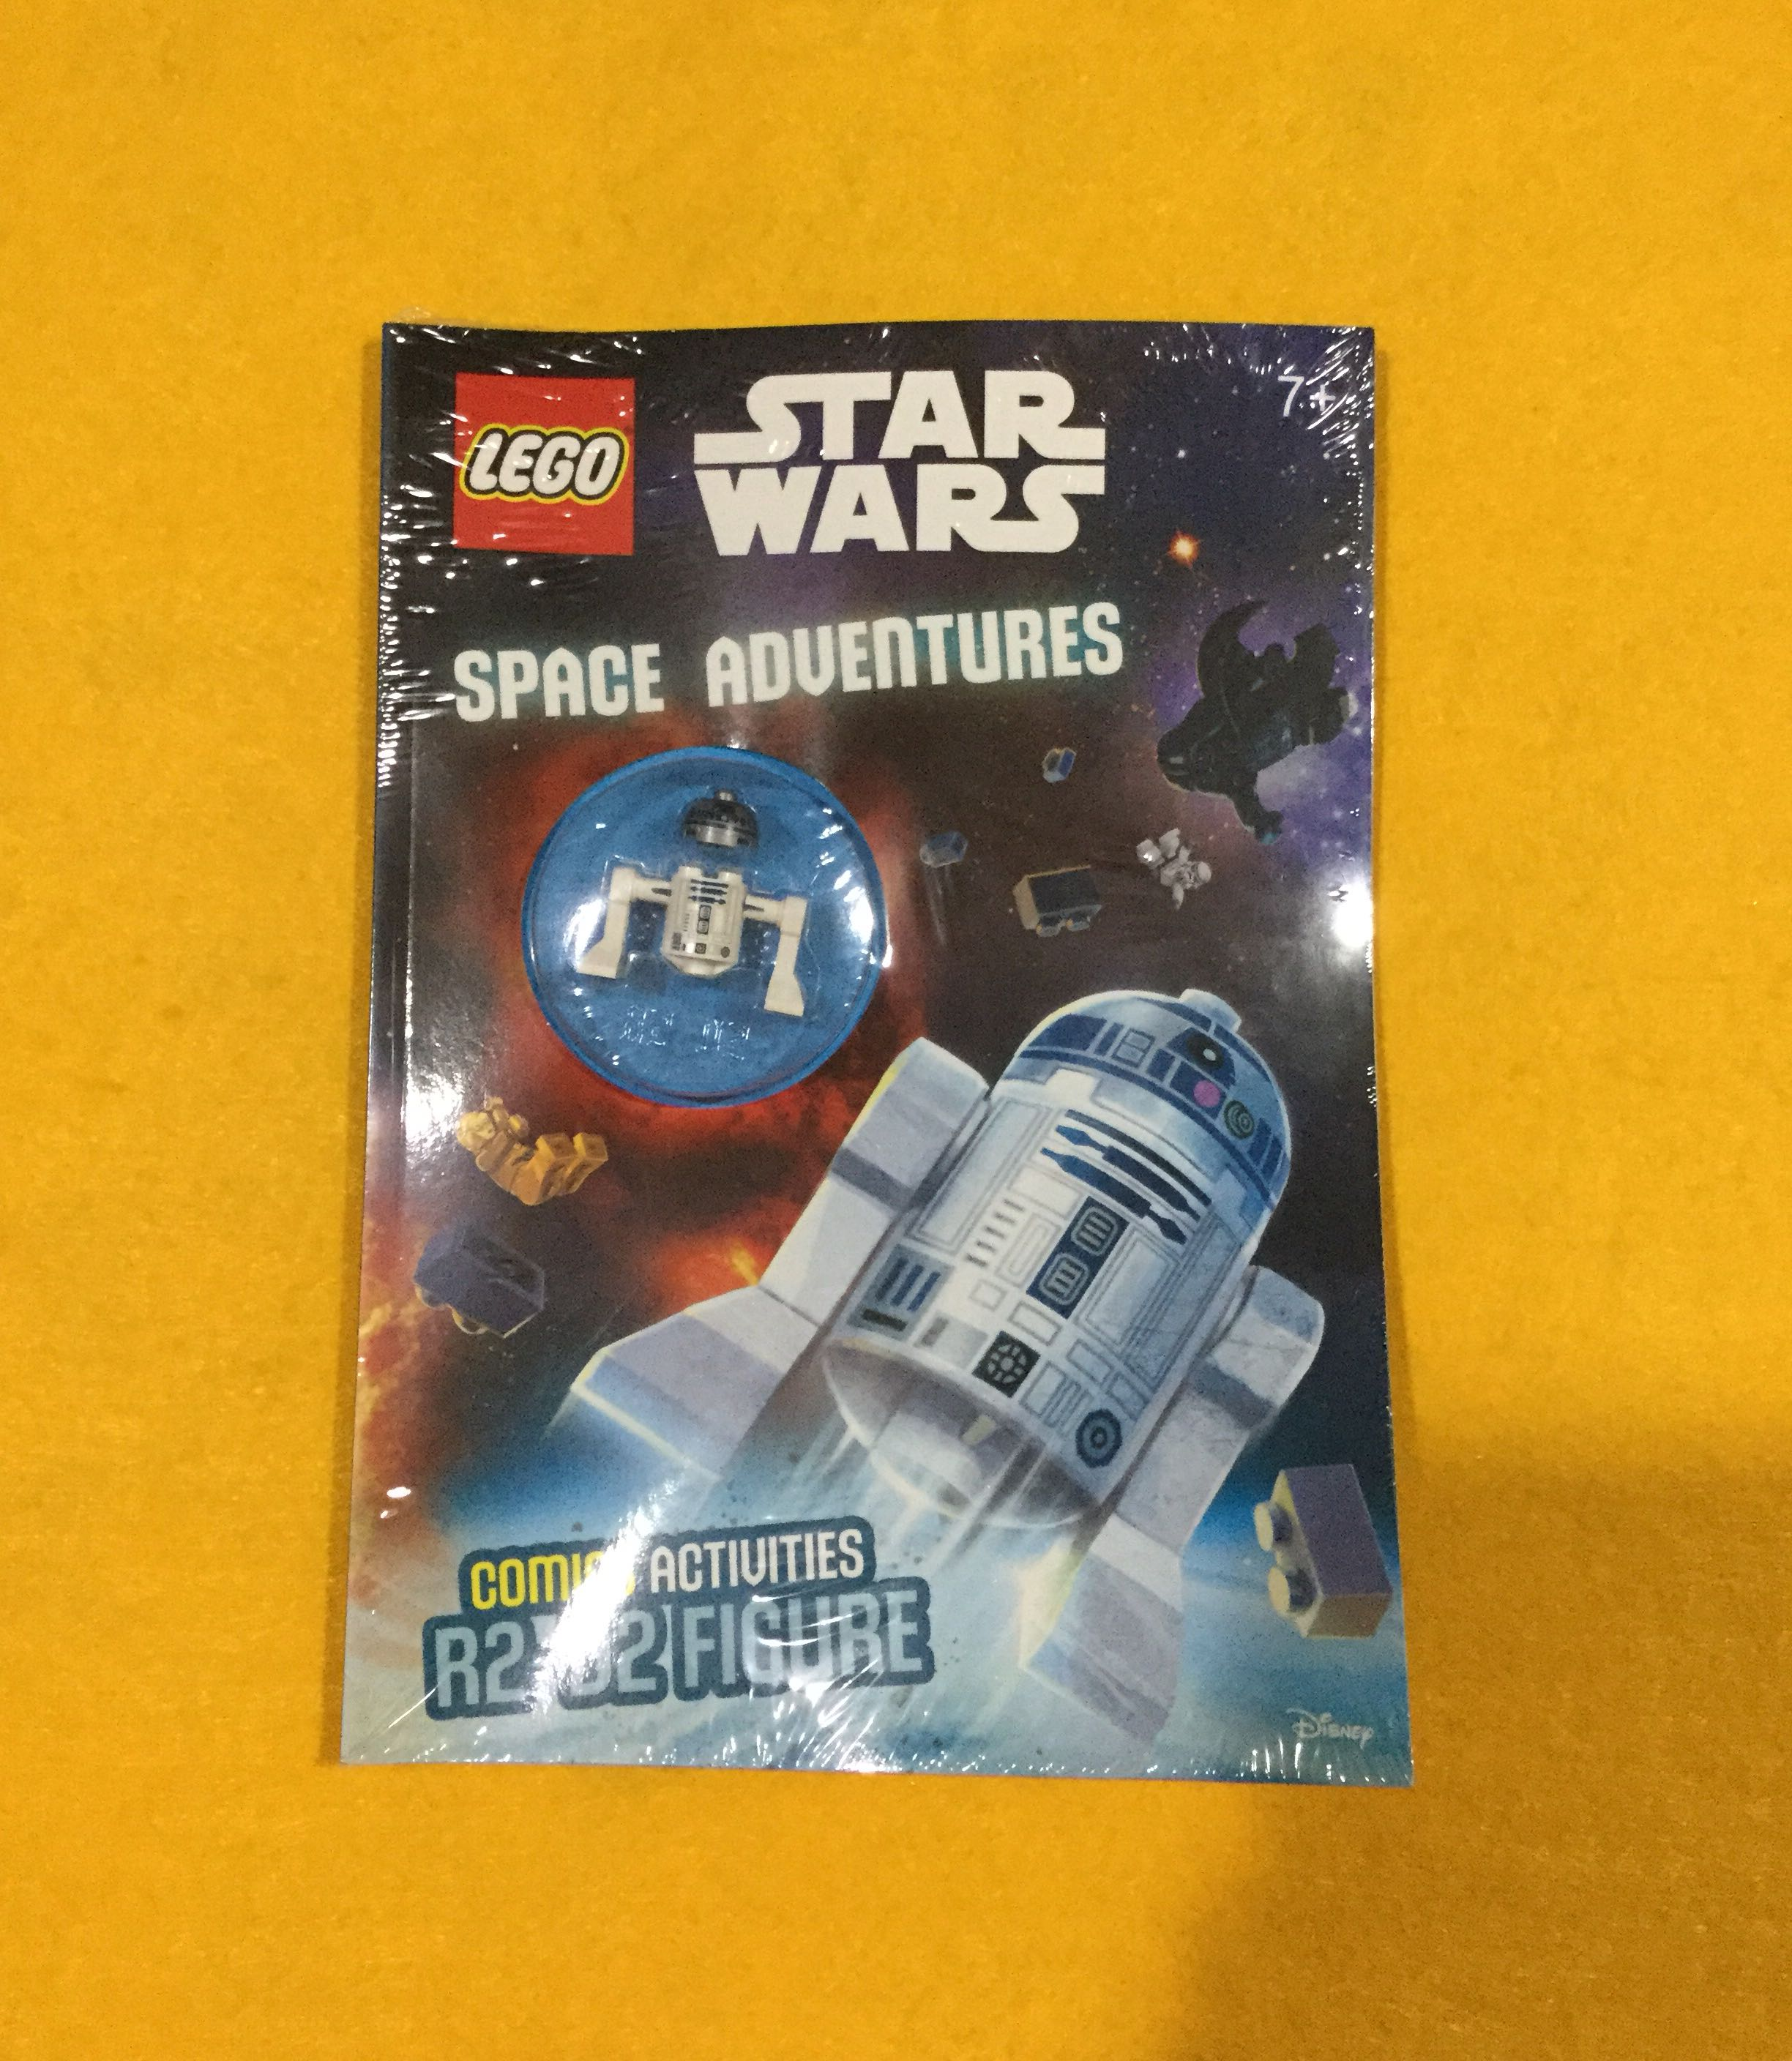 🆕Lego Star Wars: Space Adventures (Activity Book with R2-D2 Minifigure) Paperback